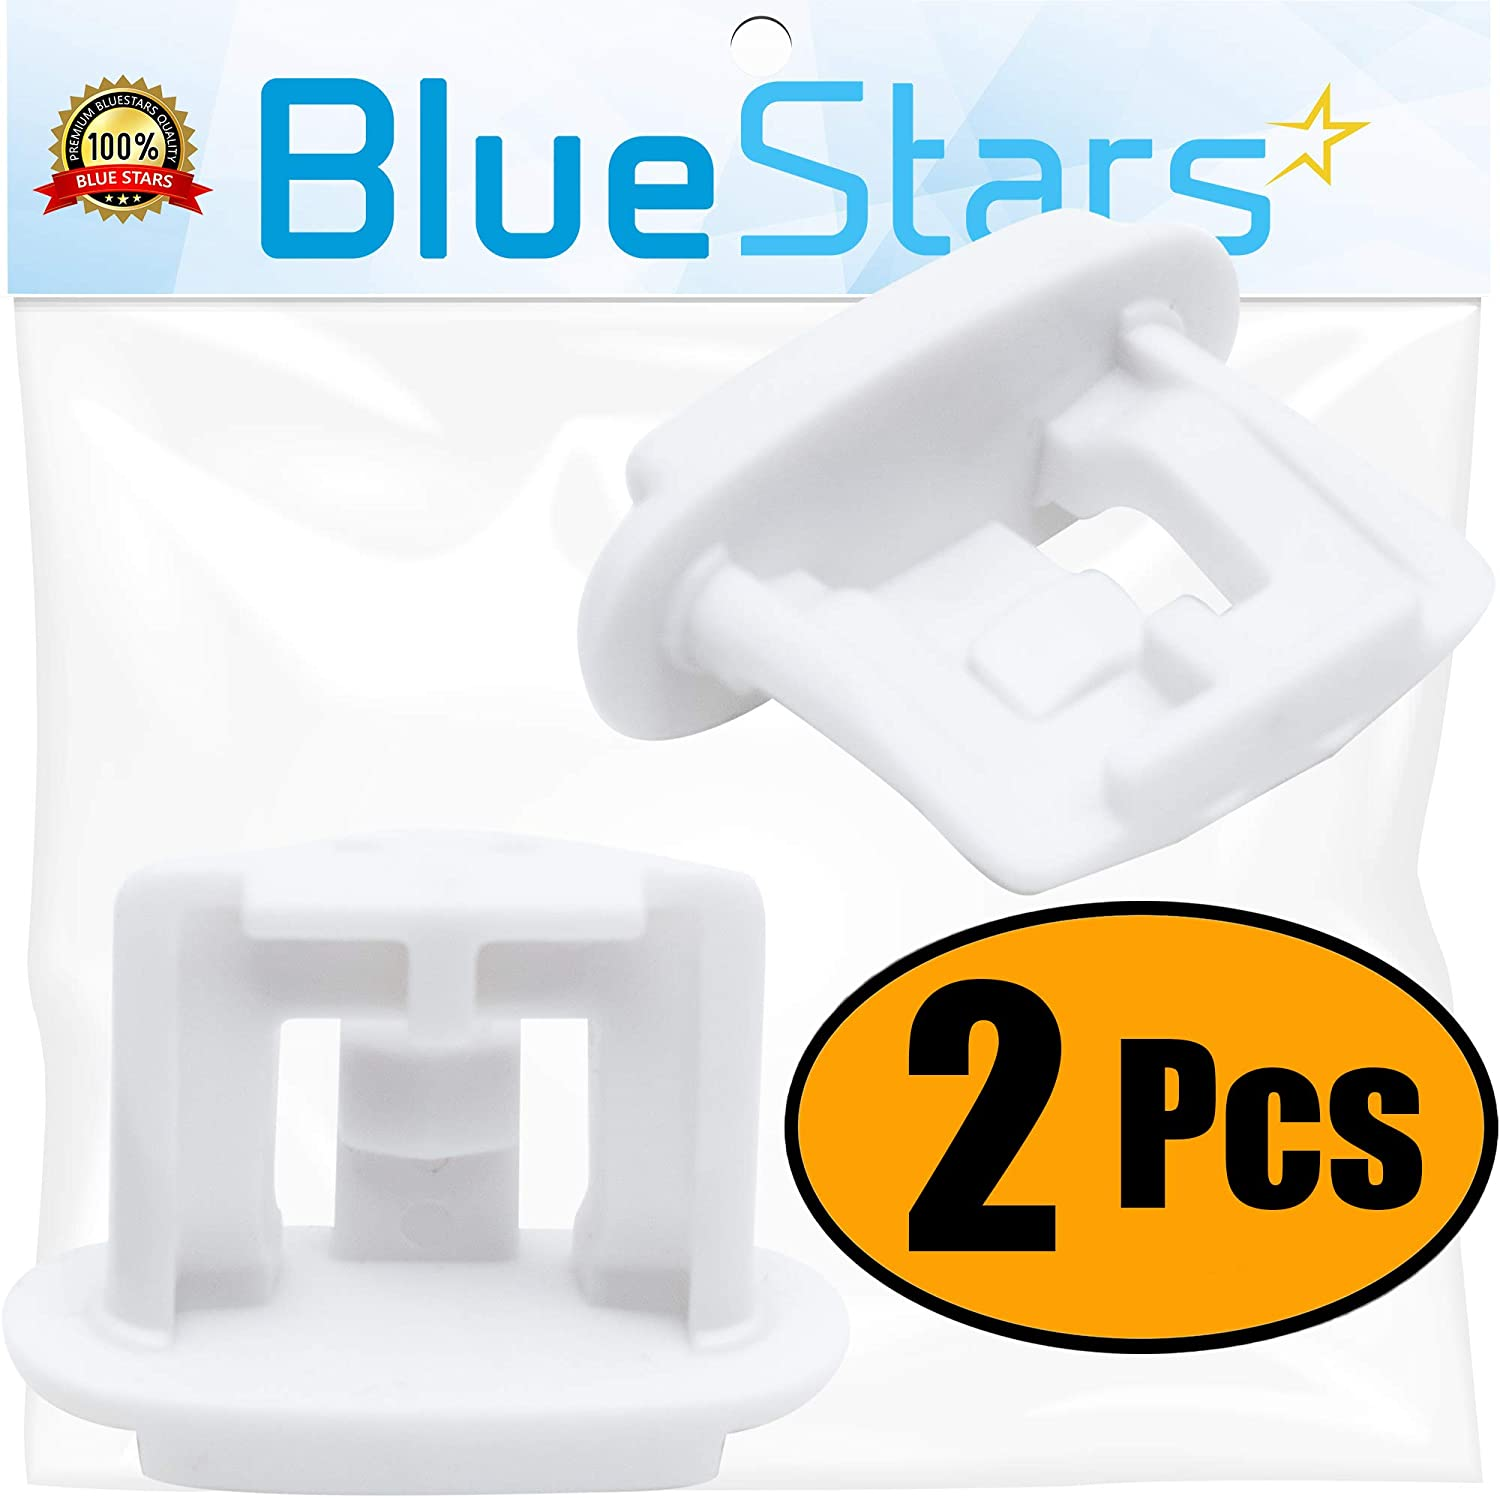 Ultra Durable WD12X10304 Dishwasher Upper Rack Slide End Cap Replacement Part by Blue Stars – Exact Fit For GE & Kenmore Dishwashers - Replaces AP4484666 WD12X344 - PACK OF 2